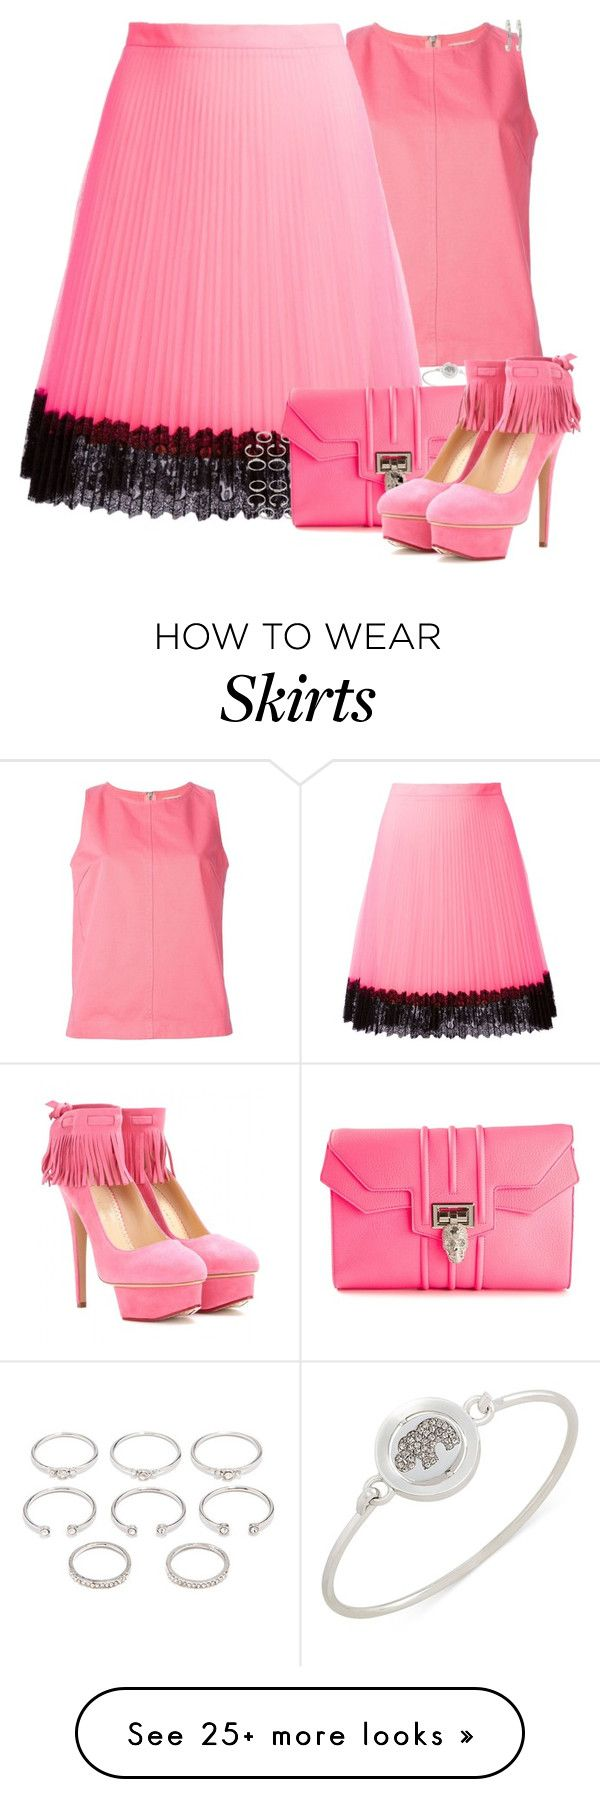 """""""Pink October: Breast Cancer Awareness Month"""" by mad-one on Polyvore featuring YMC, Carolee, Christopher Kane, Forever 21, Philipp Plein, Charlotte Olympia and Forever New"""